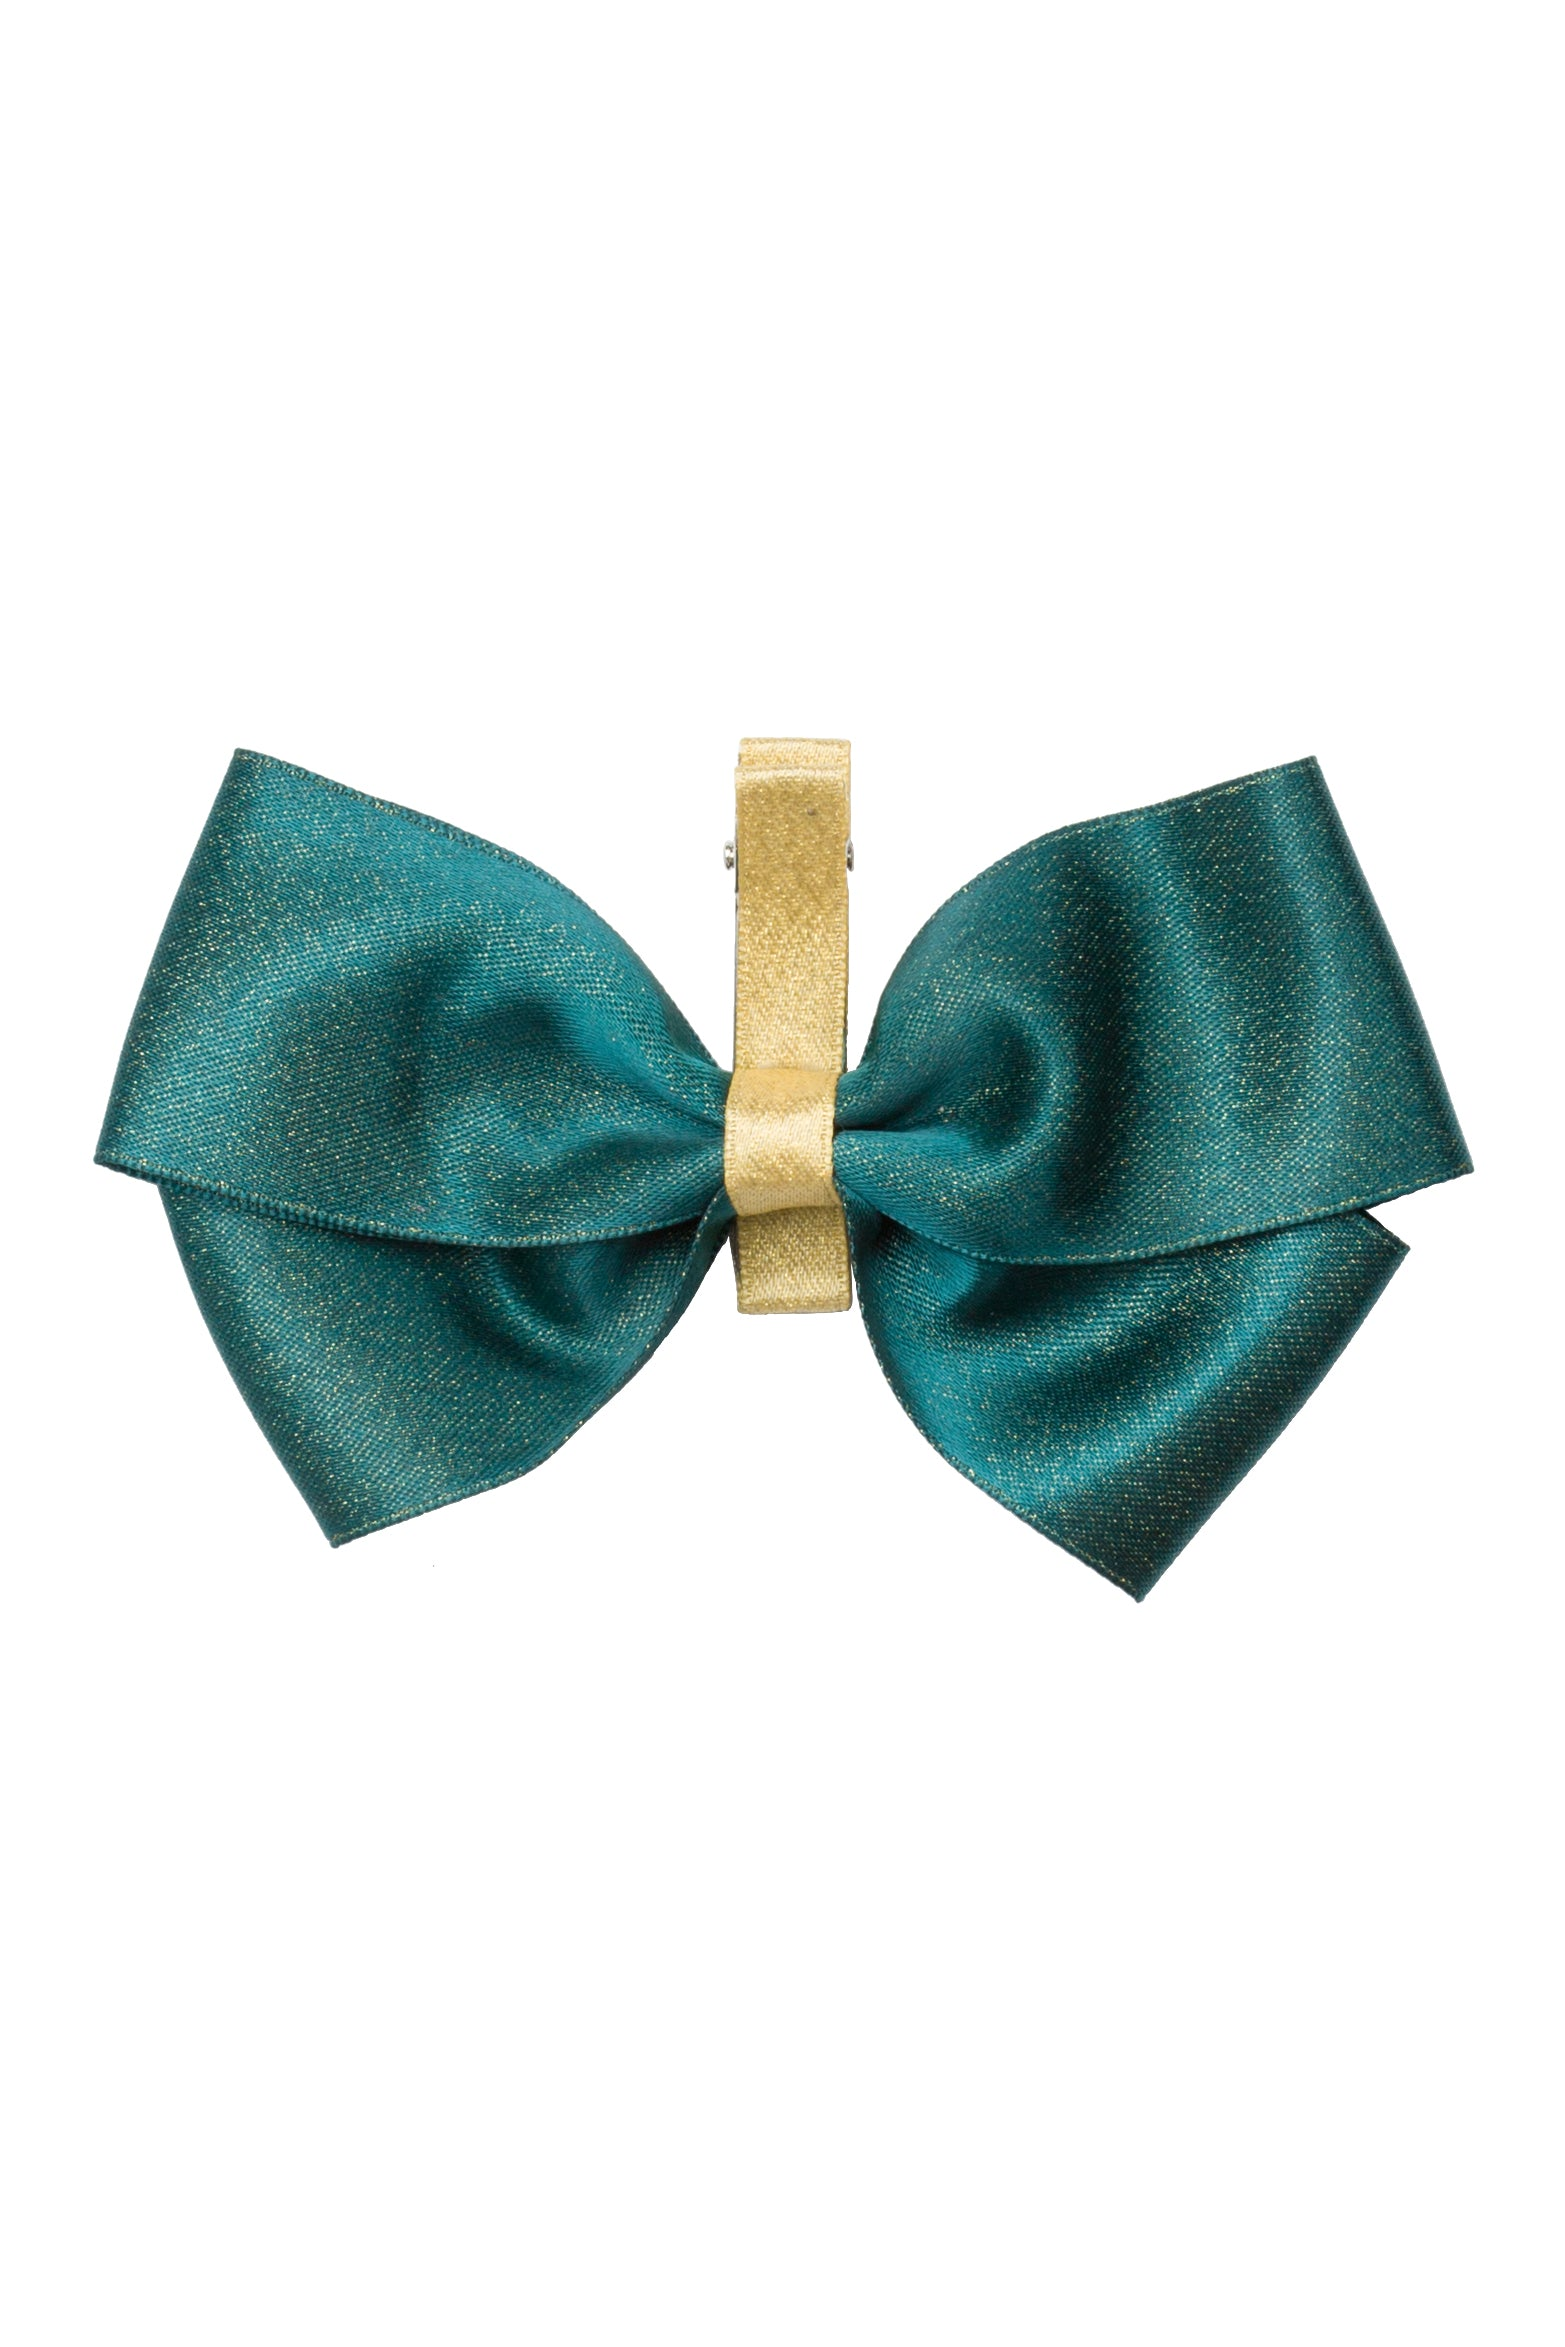 Heather Sparkle Clip - Teal - PROJECT 6, modest fashion